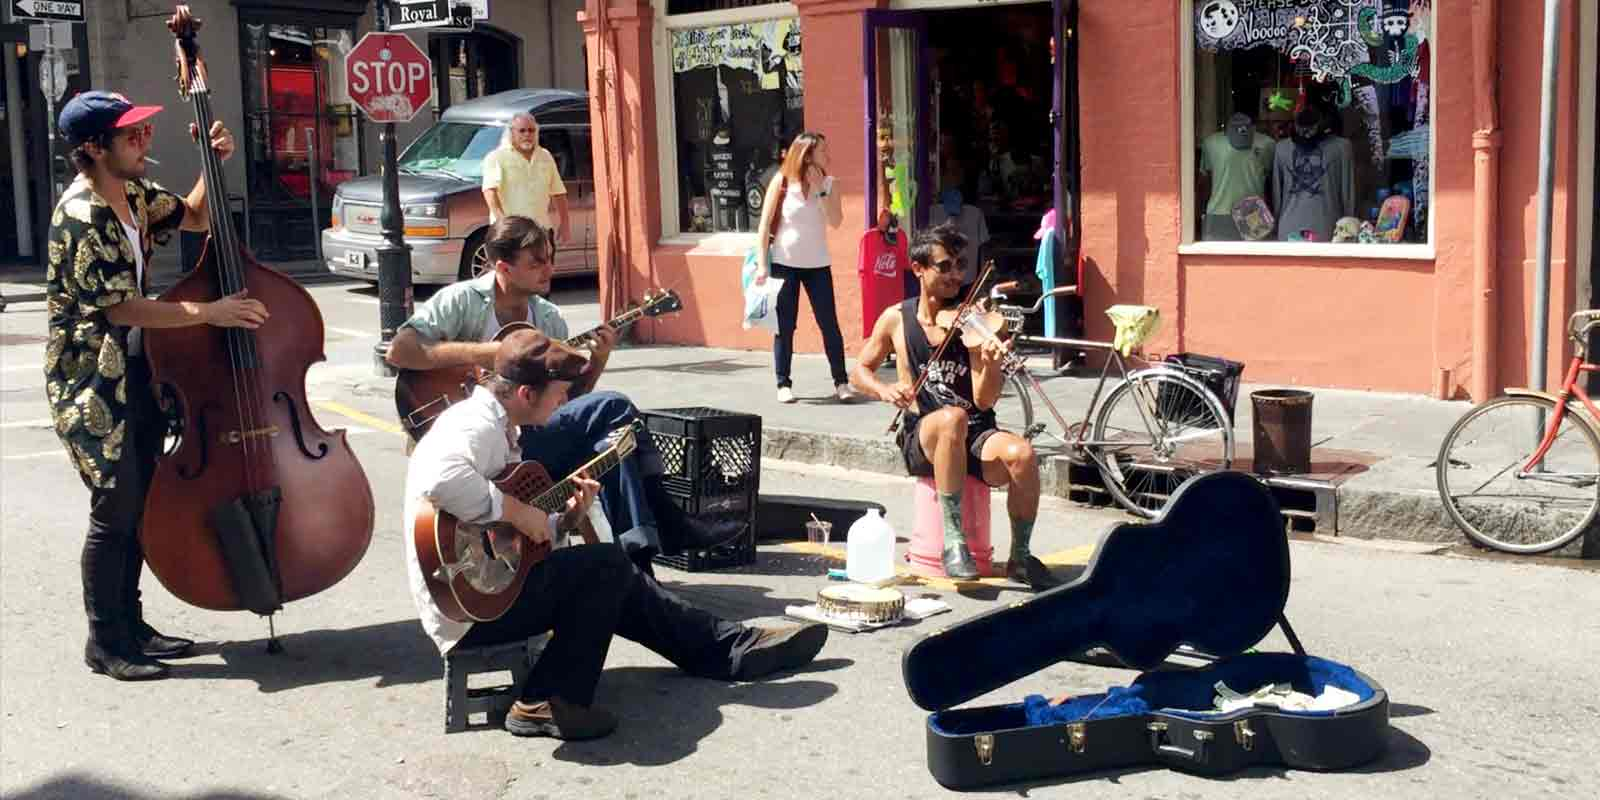 New Orleans travel tips: Street musicians perform on Royal St. in the New Orleans' French Quarter. If you stop to listen to a street musician, leave a tip!